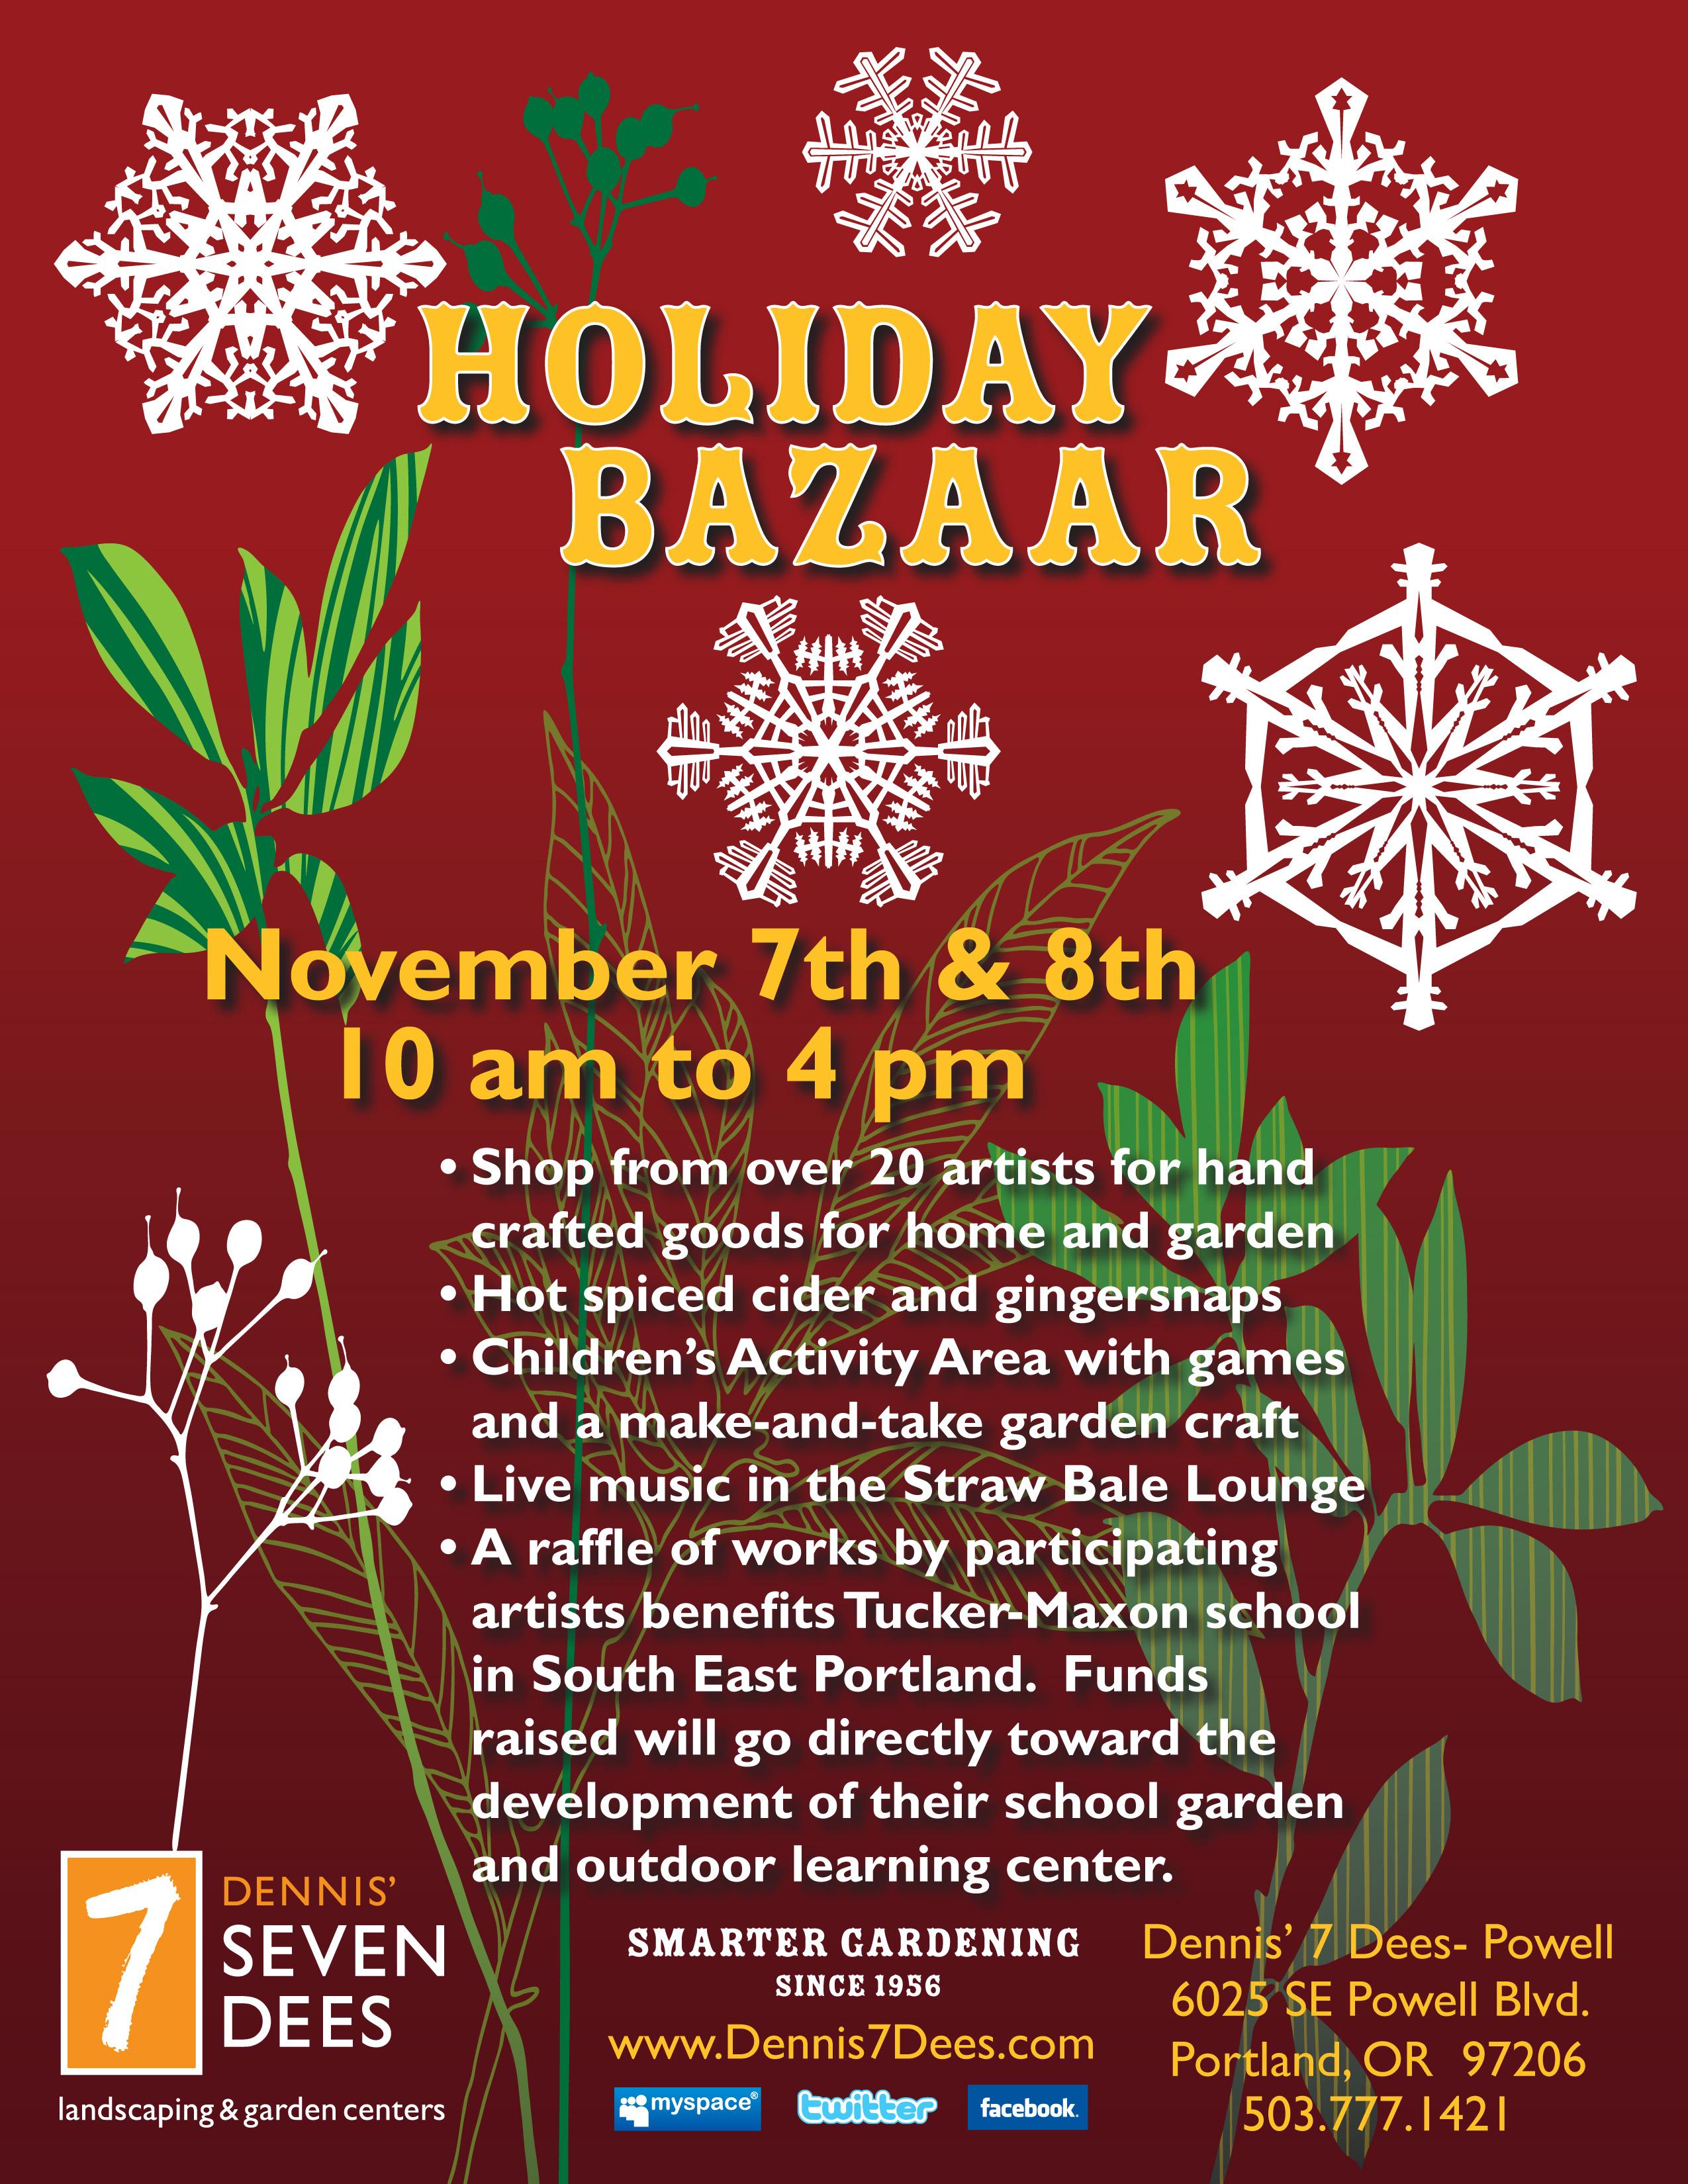 holiday bazaar flyerjpg